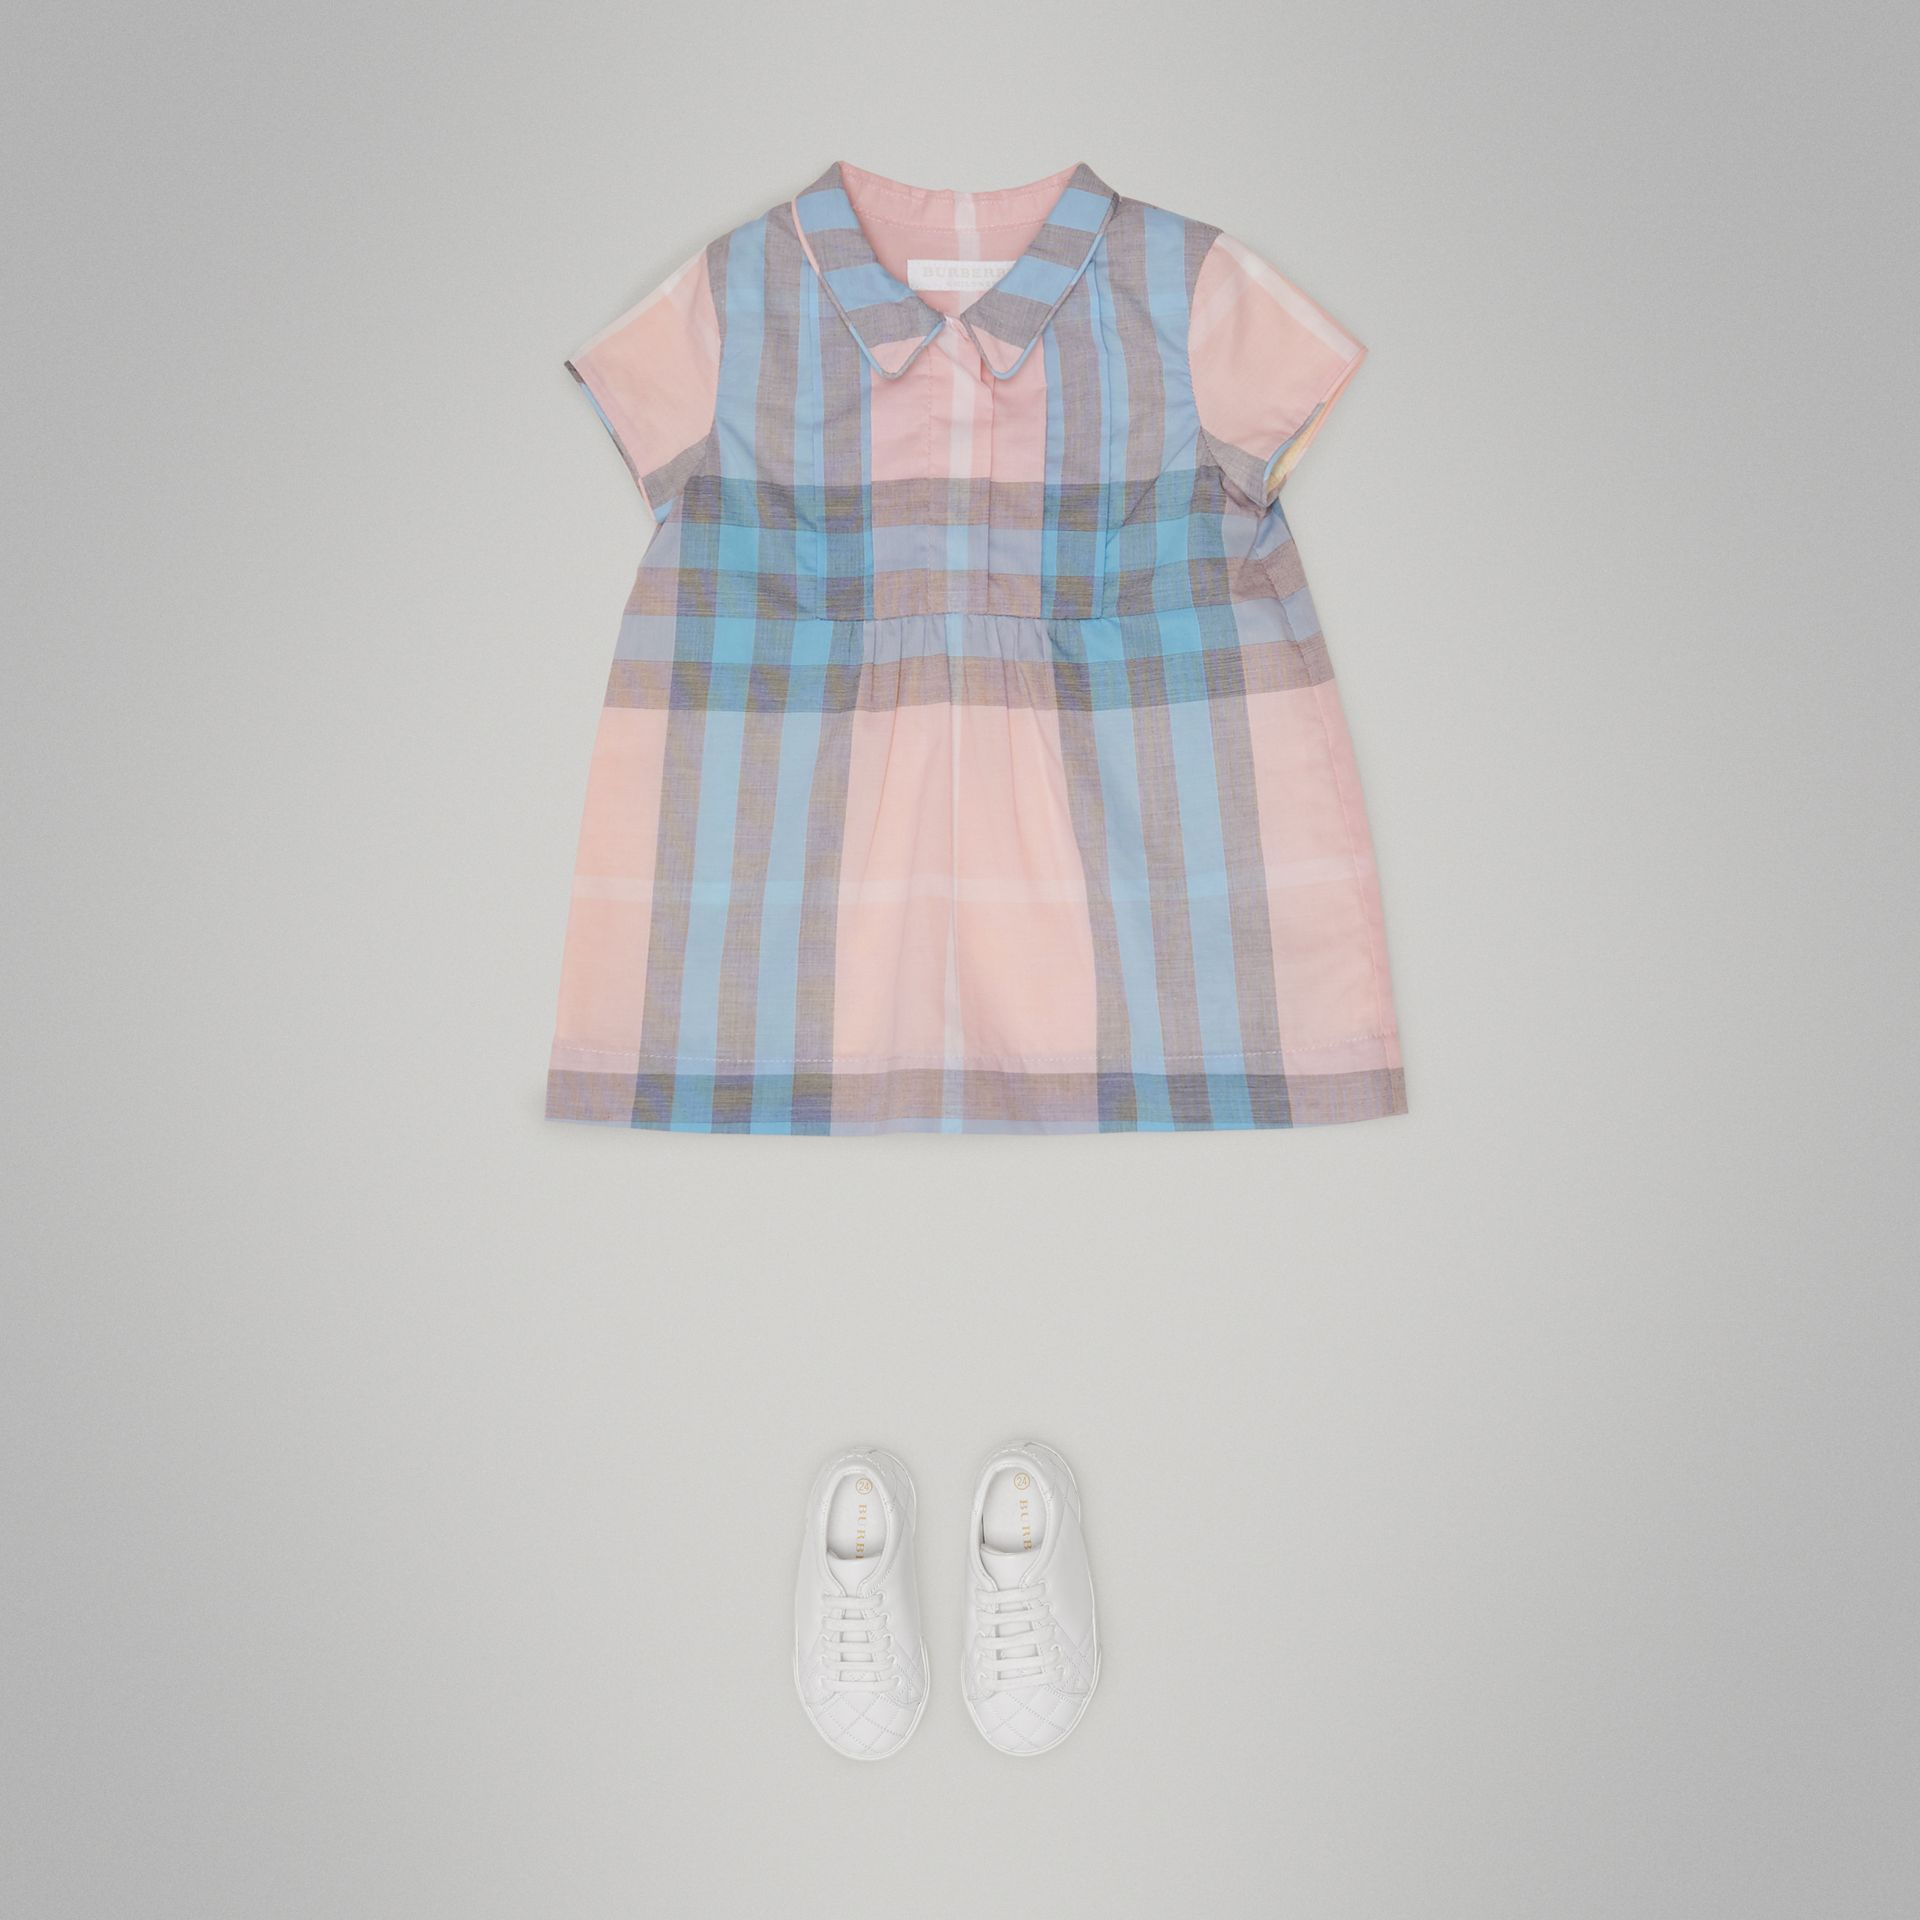 Pleated Bib Check Cotton Dress in Ice Pink | Burberry United Kingdom - gallery image 1